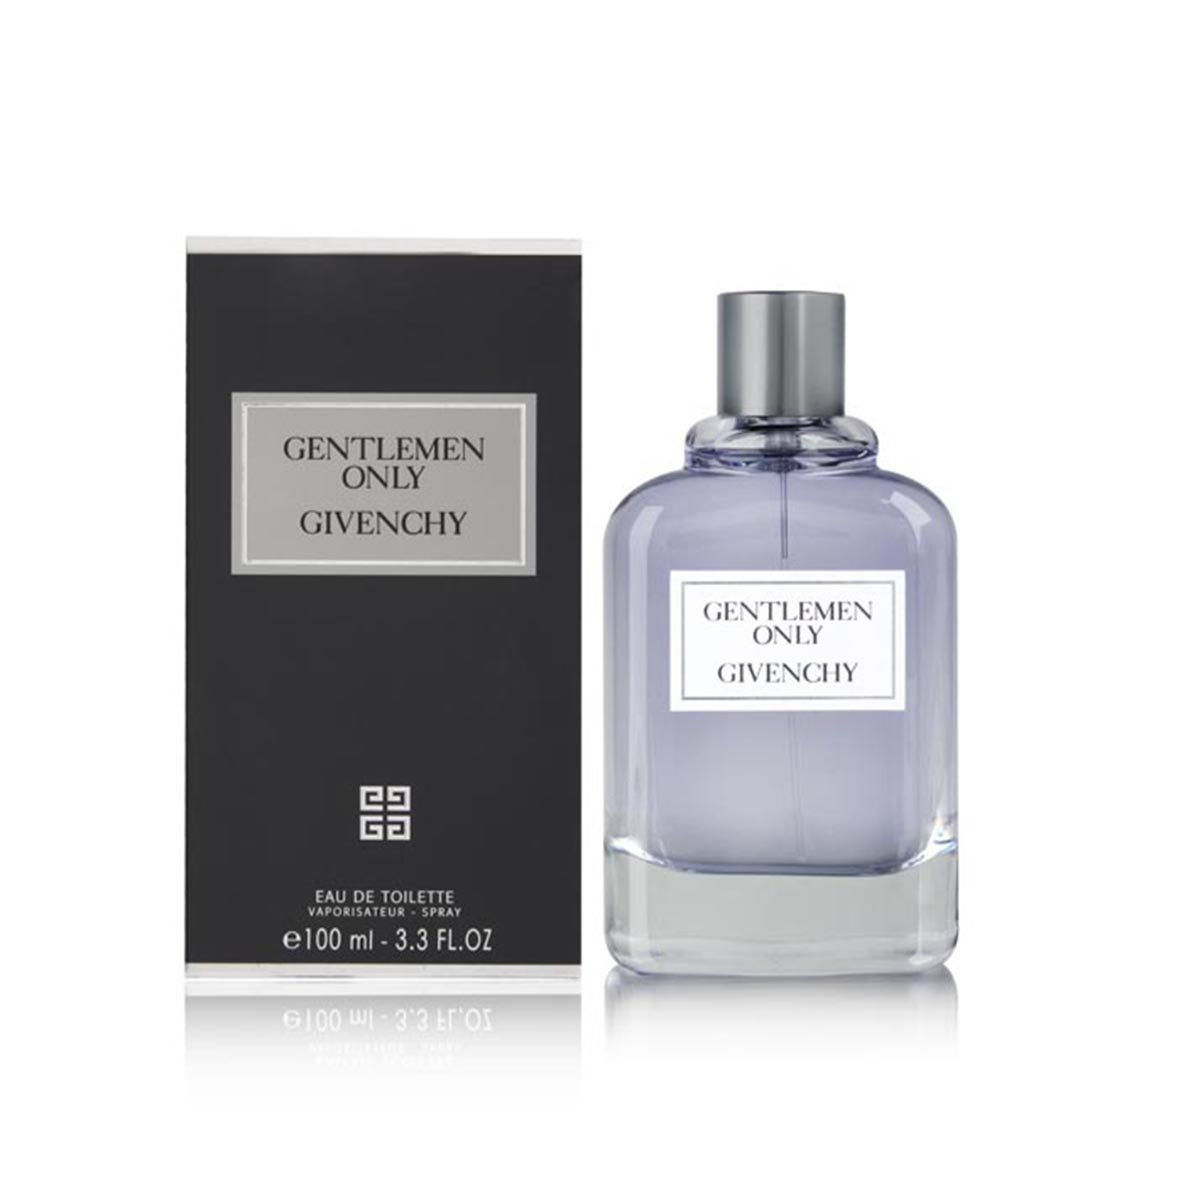 Givenchy gentleman only eau de toilette 100ml vaporizador